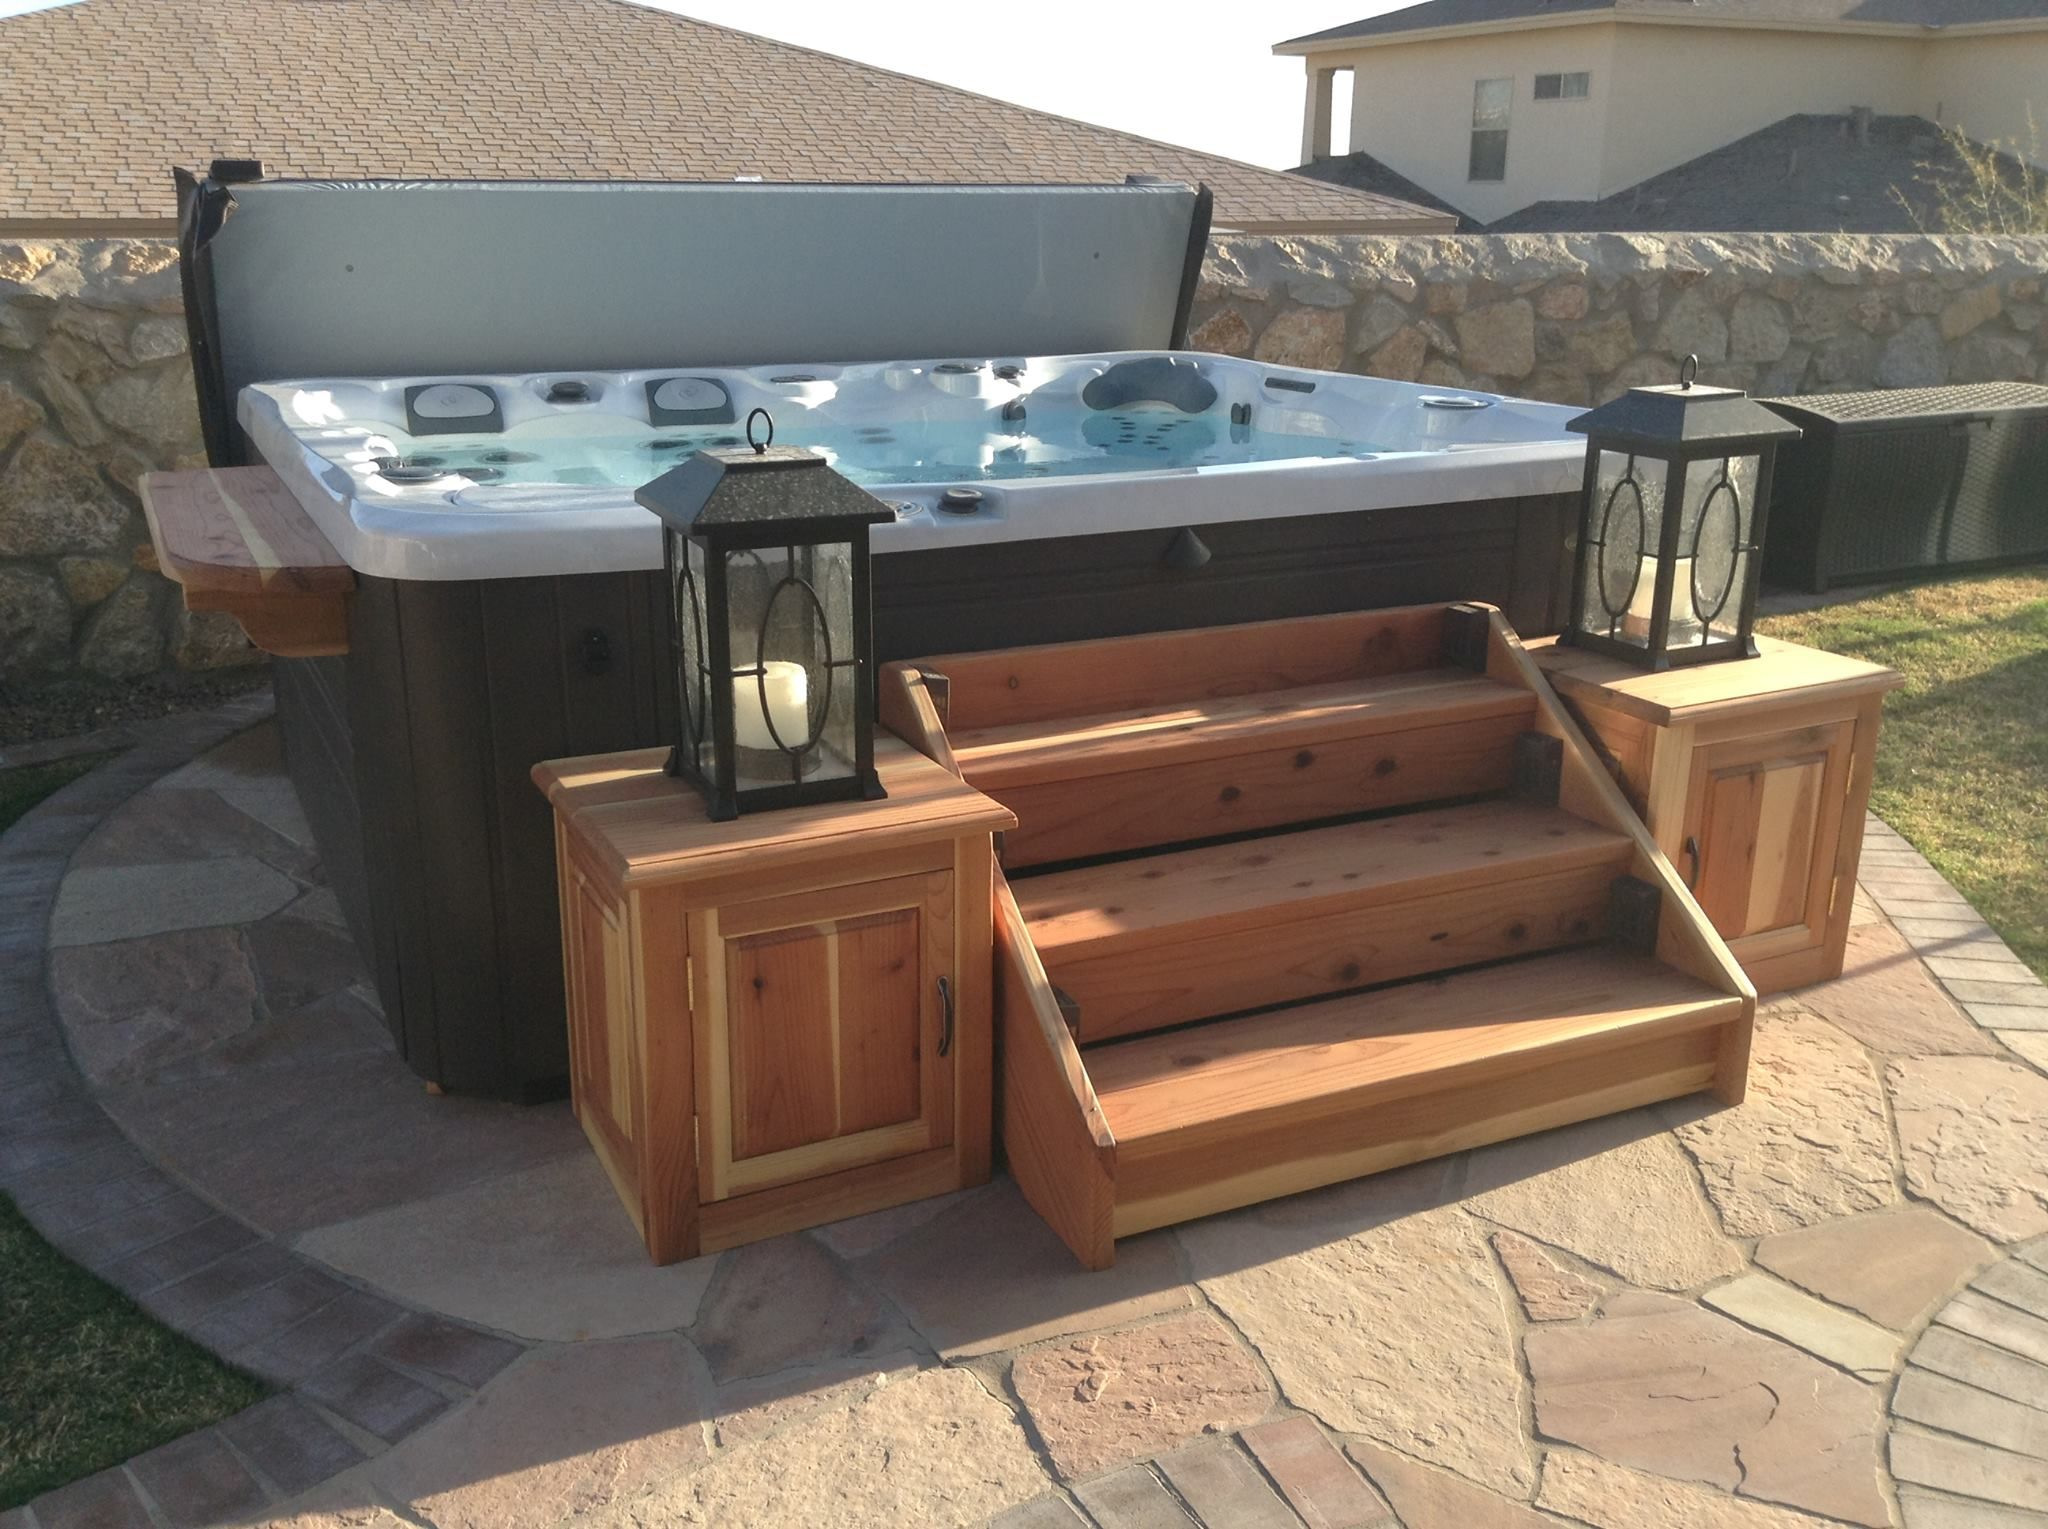 Cedar Wood Hot Tub Stairs & Side Cabinets Andy